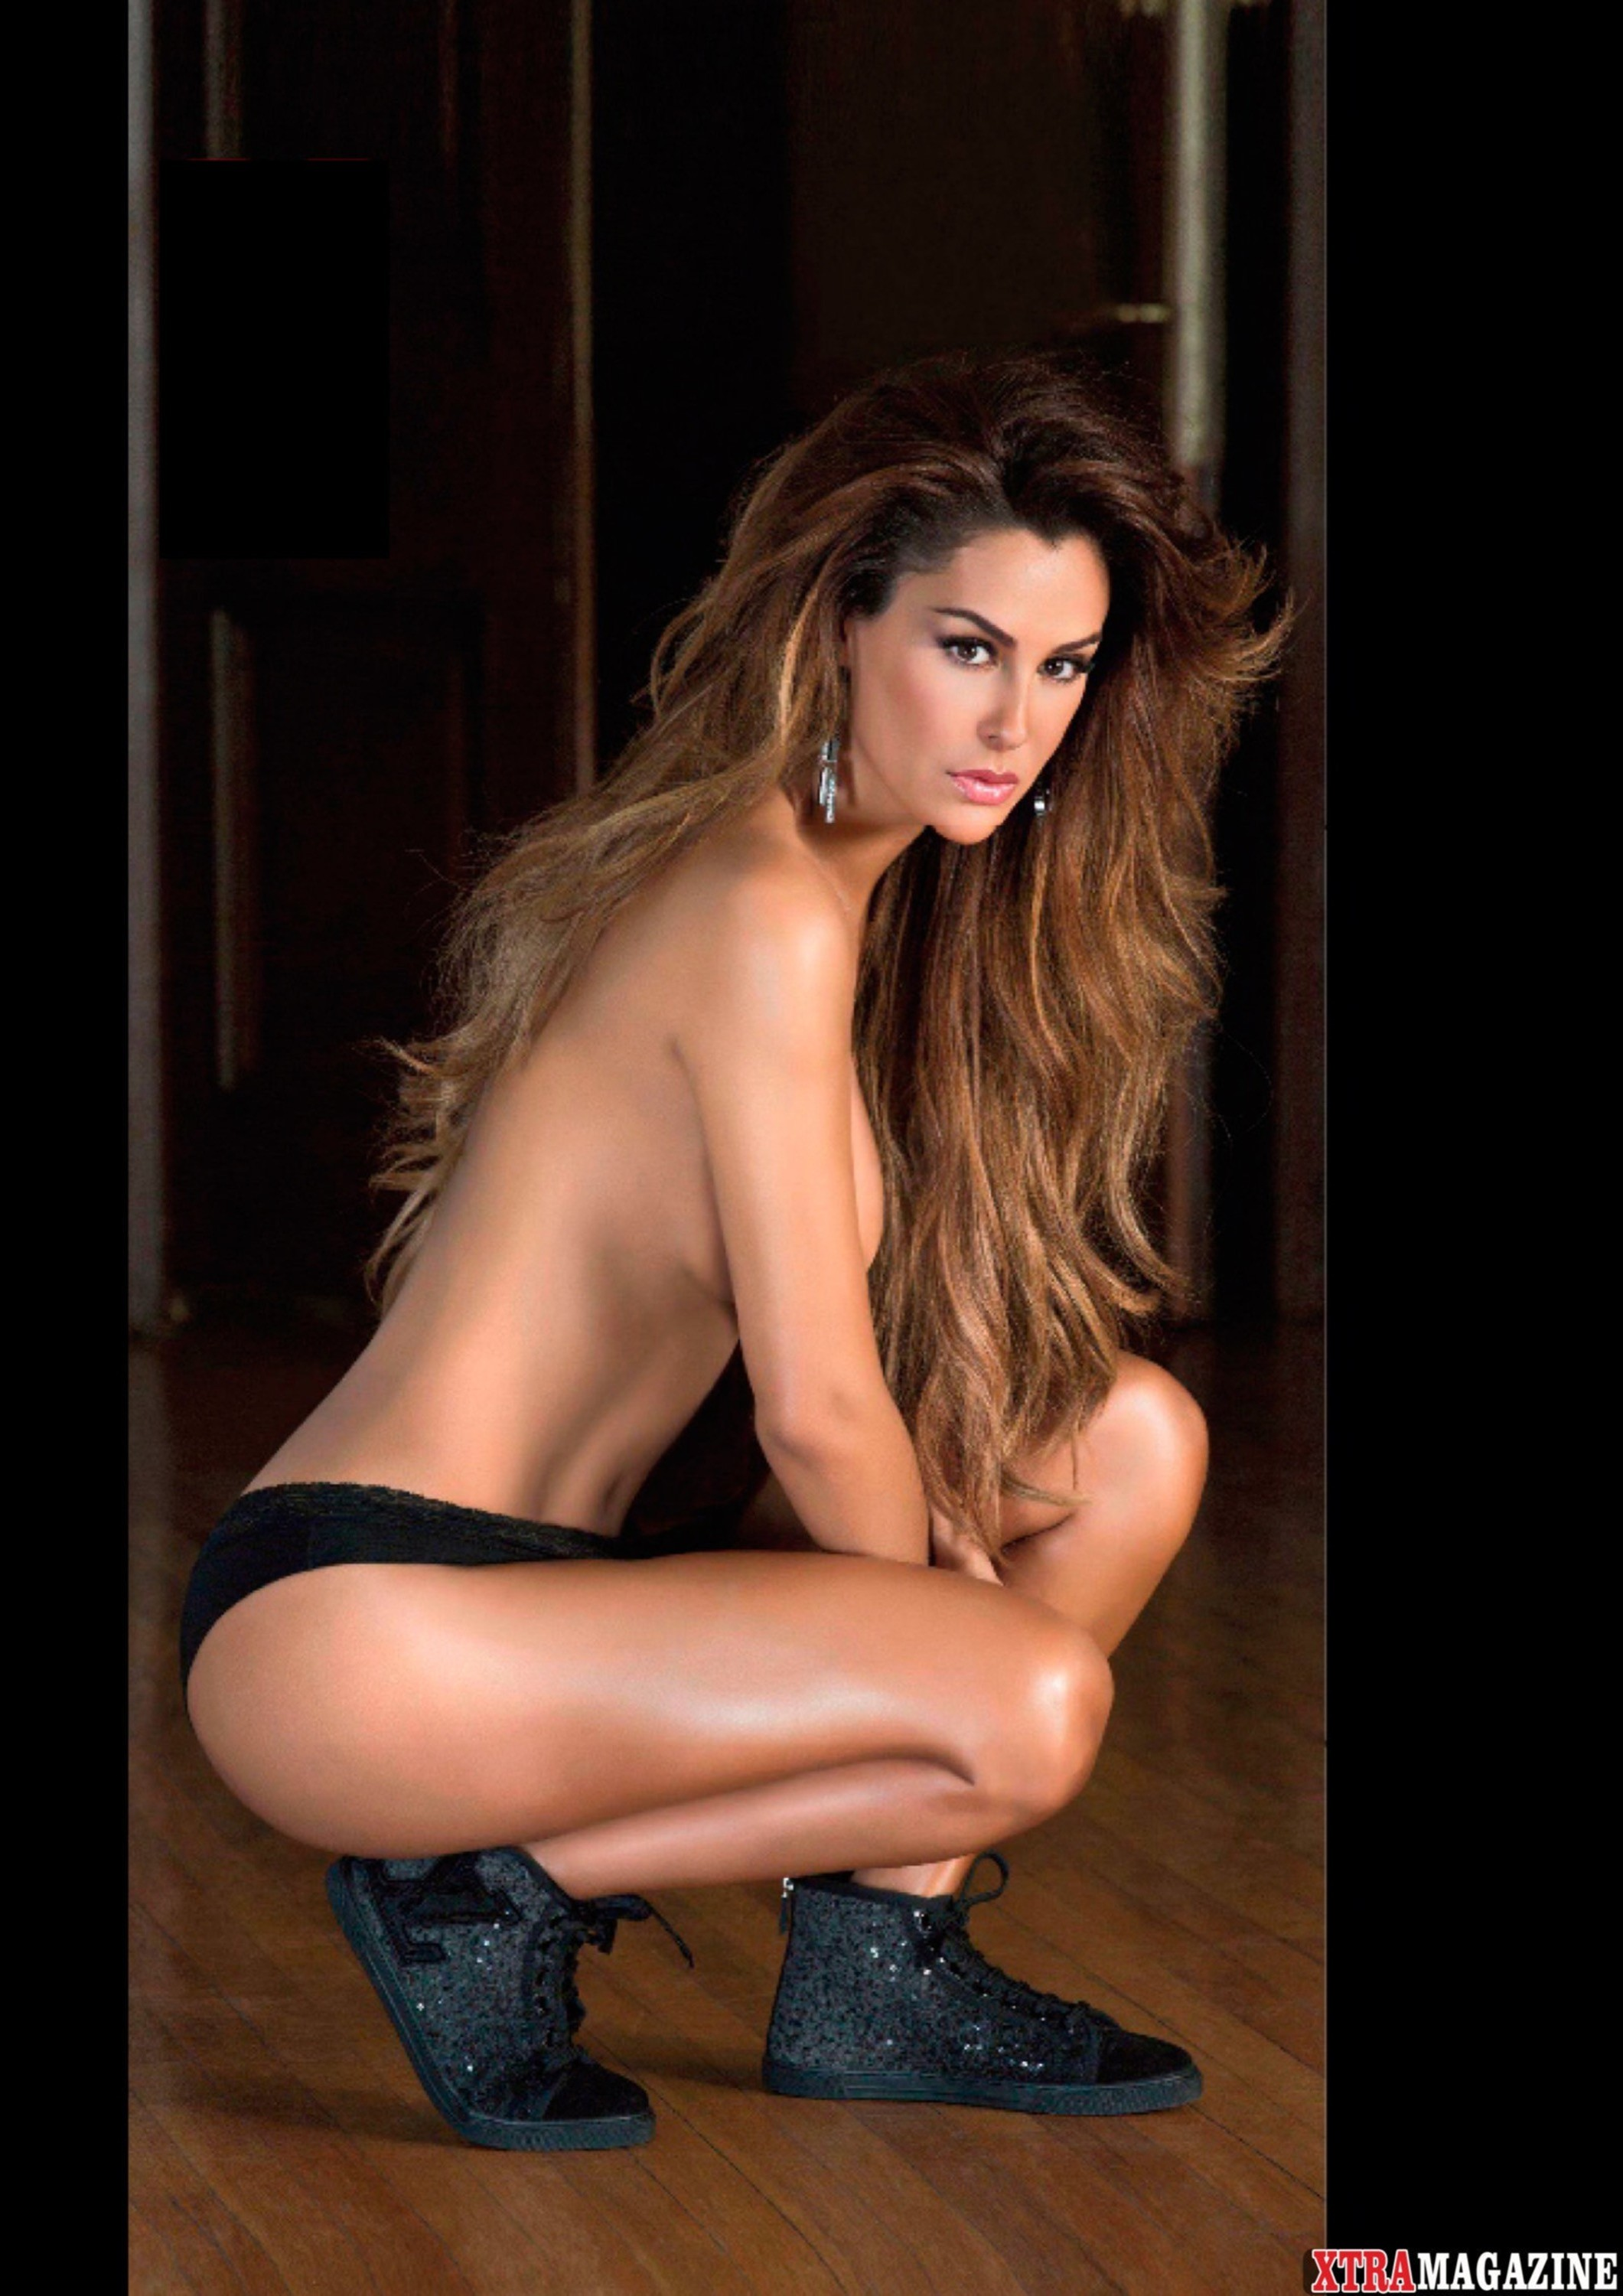 Ninel conde naked pics-4031